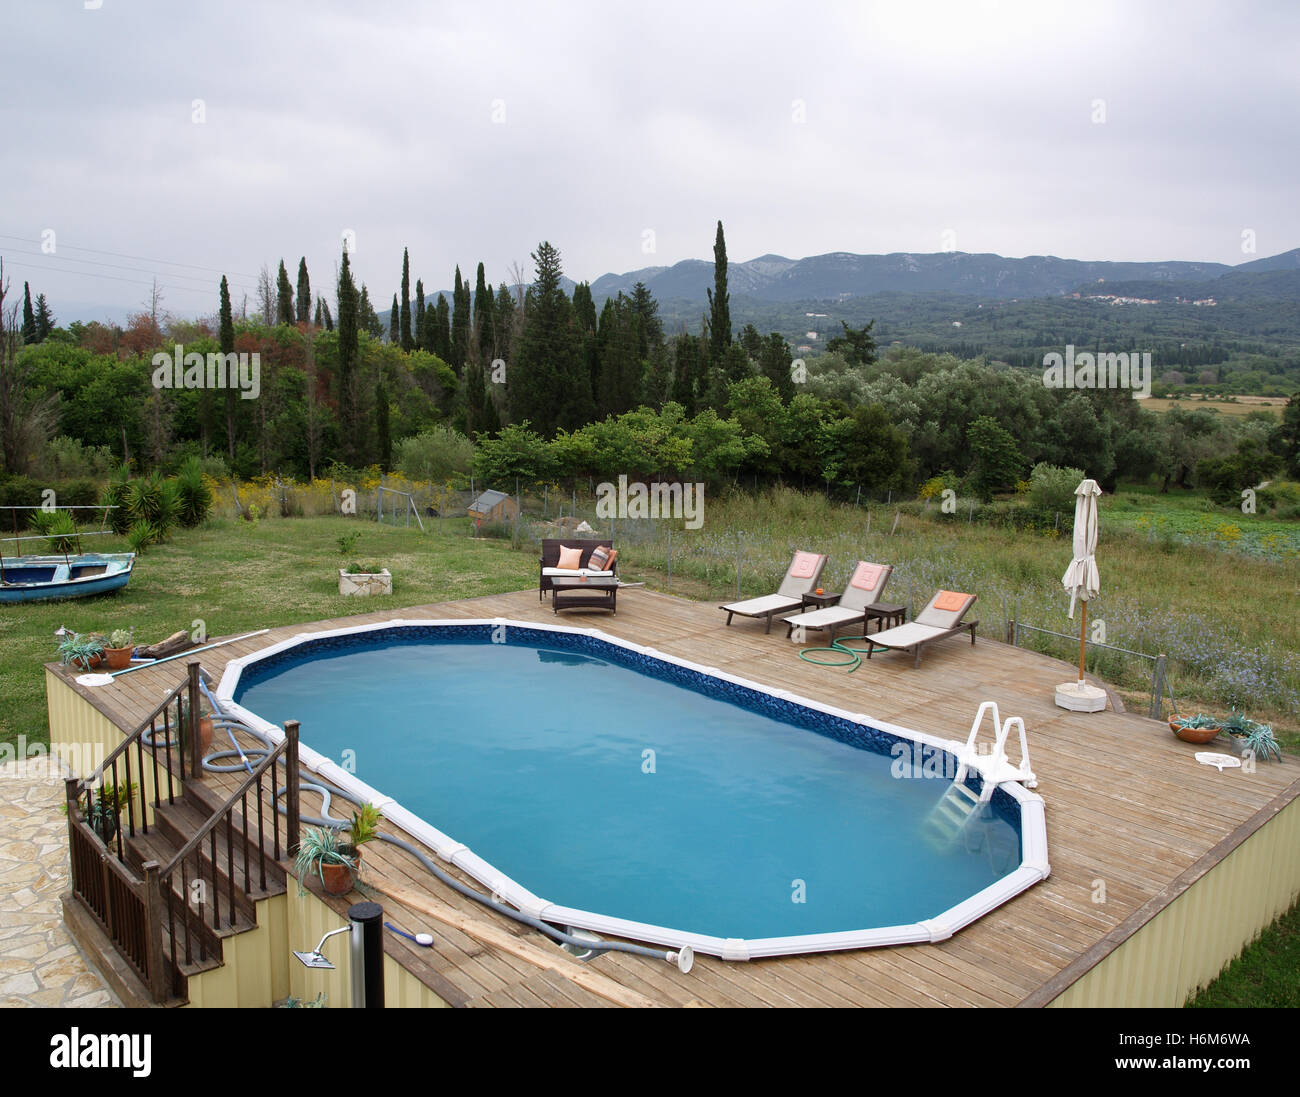 Above Ground Swimming Pool At Property In Corfu Countryside Stock Photo Alamy